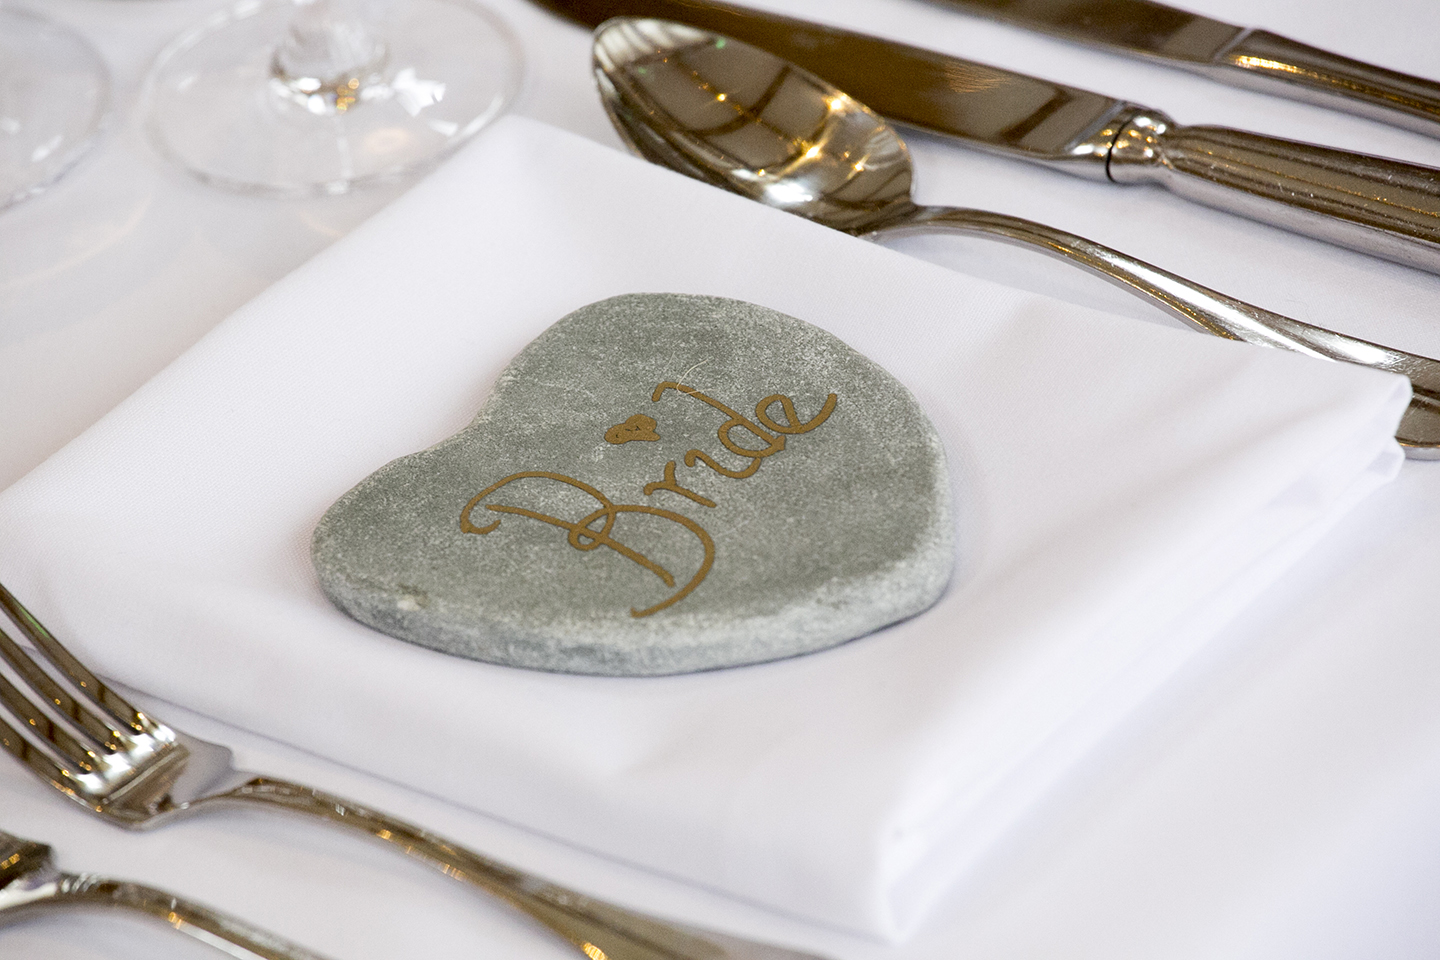 The couple wrote their guests names on heart shaped stones to create DIY table place names – wedding ideas